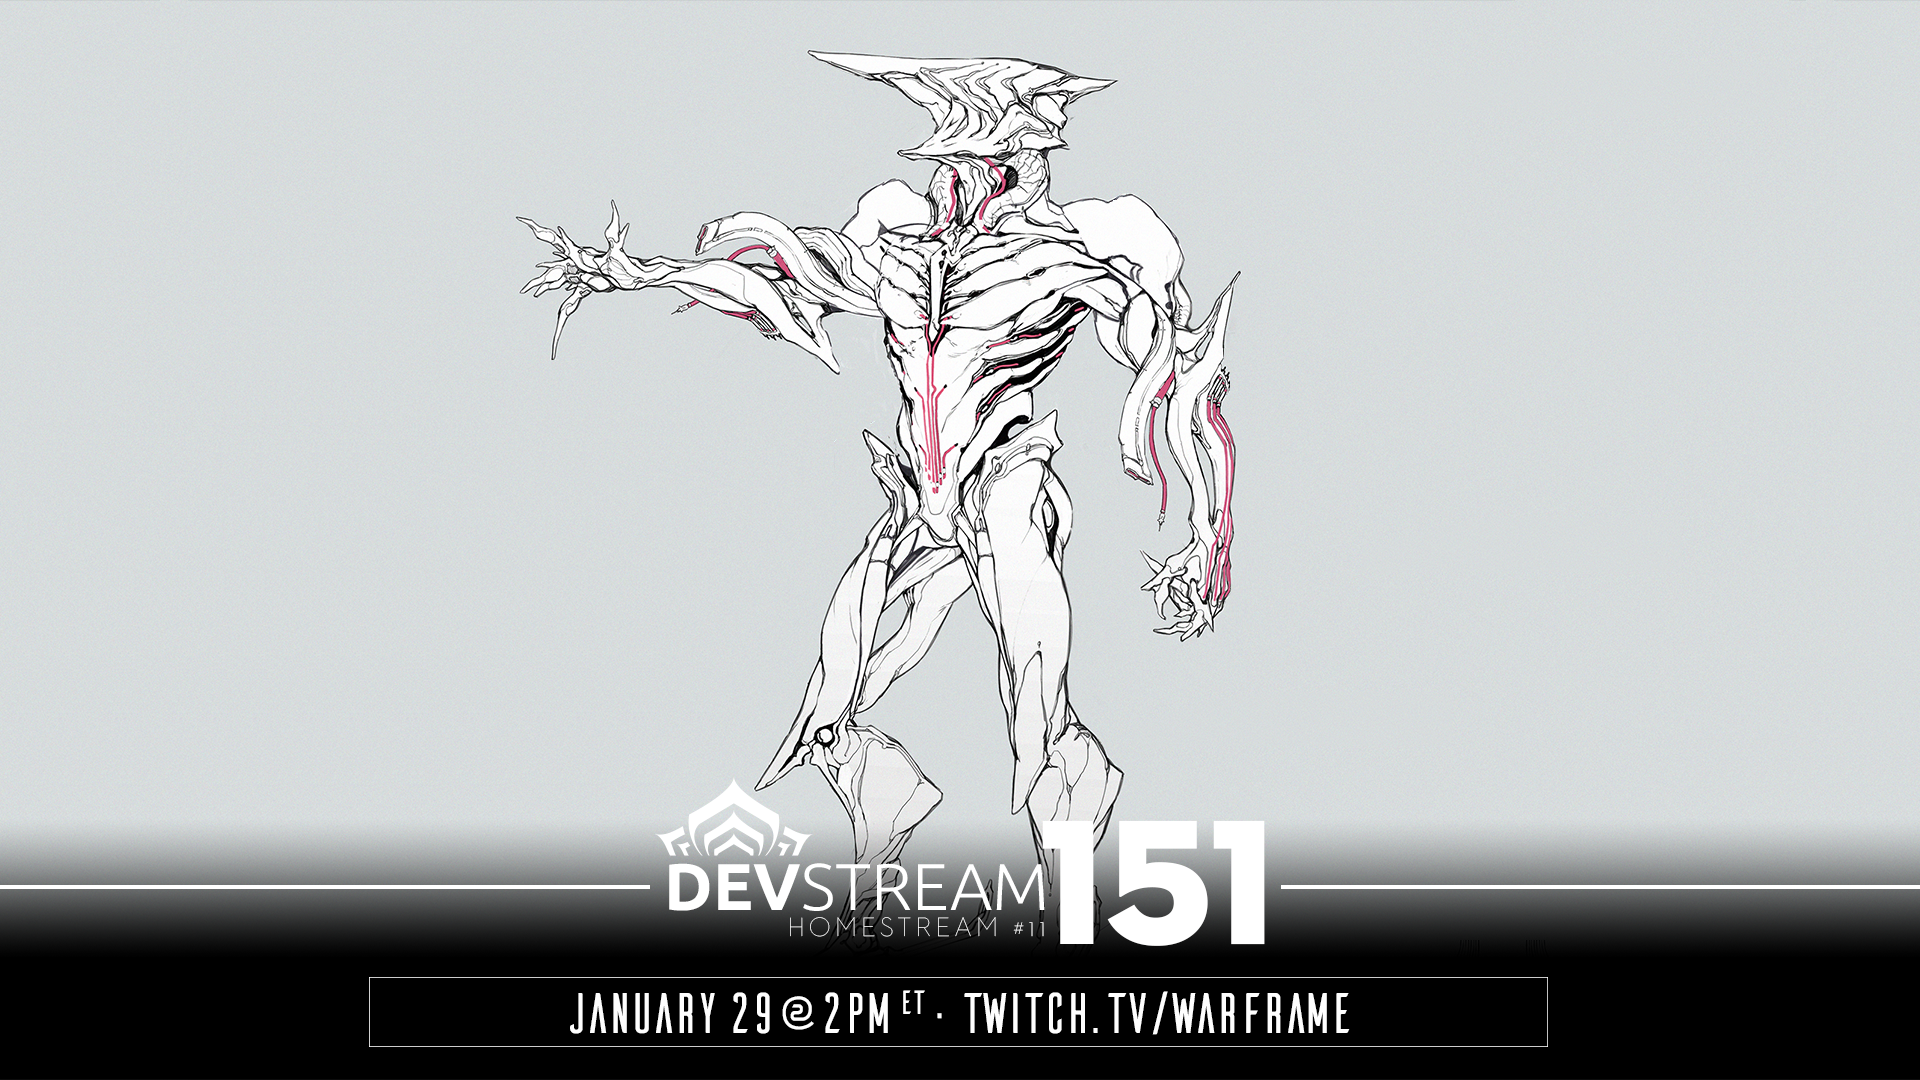 Devstream #151 (Home Devstream #11)